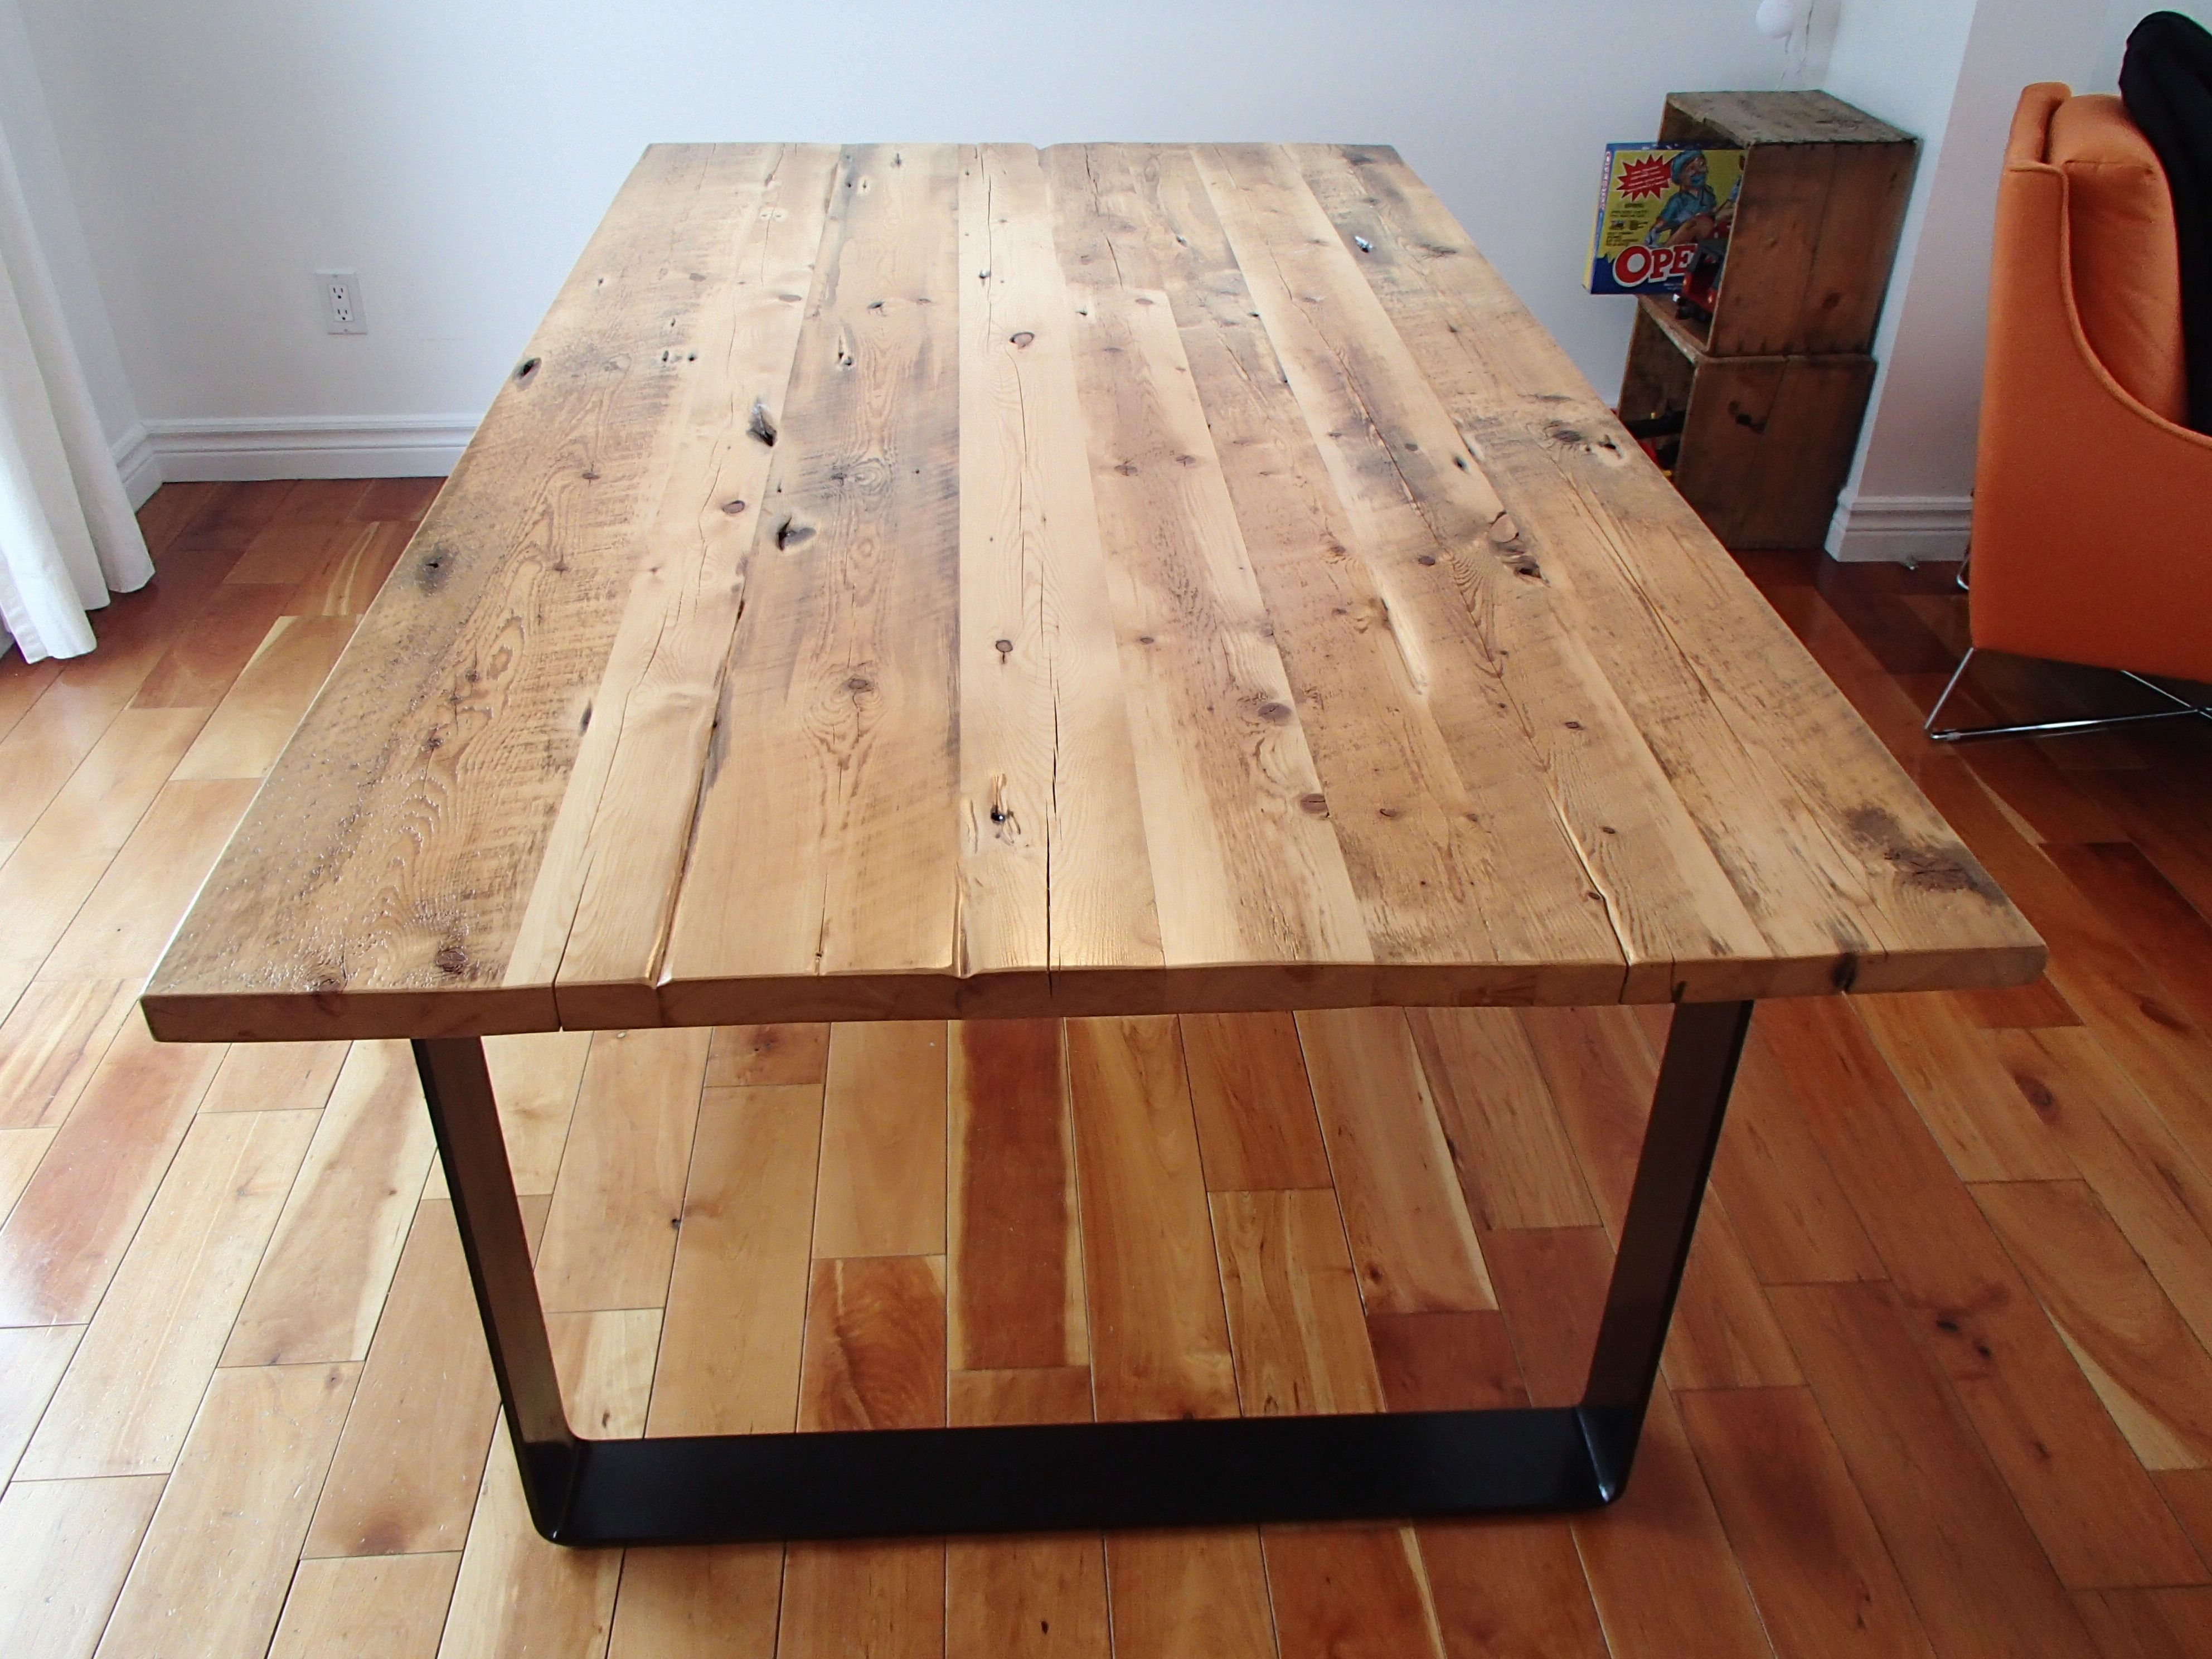 Collection industriel table bois de grange et acier recycl cuisine pinterest table for Table en bois de cuisine